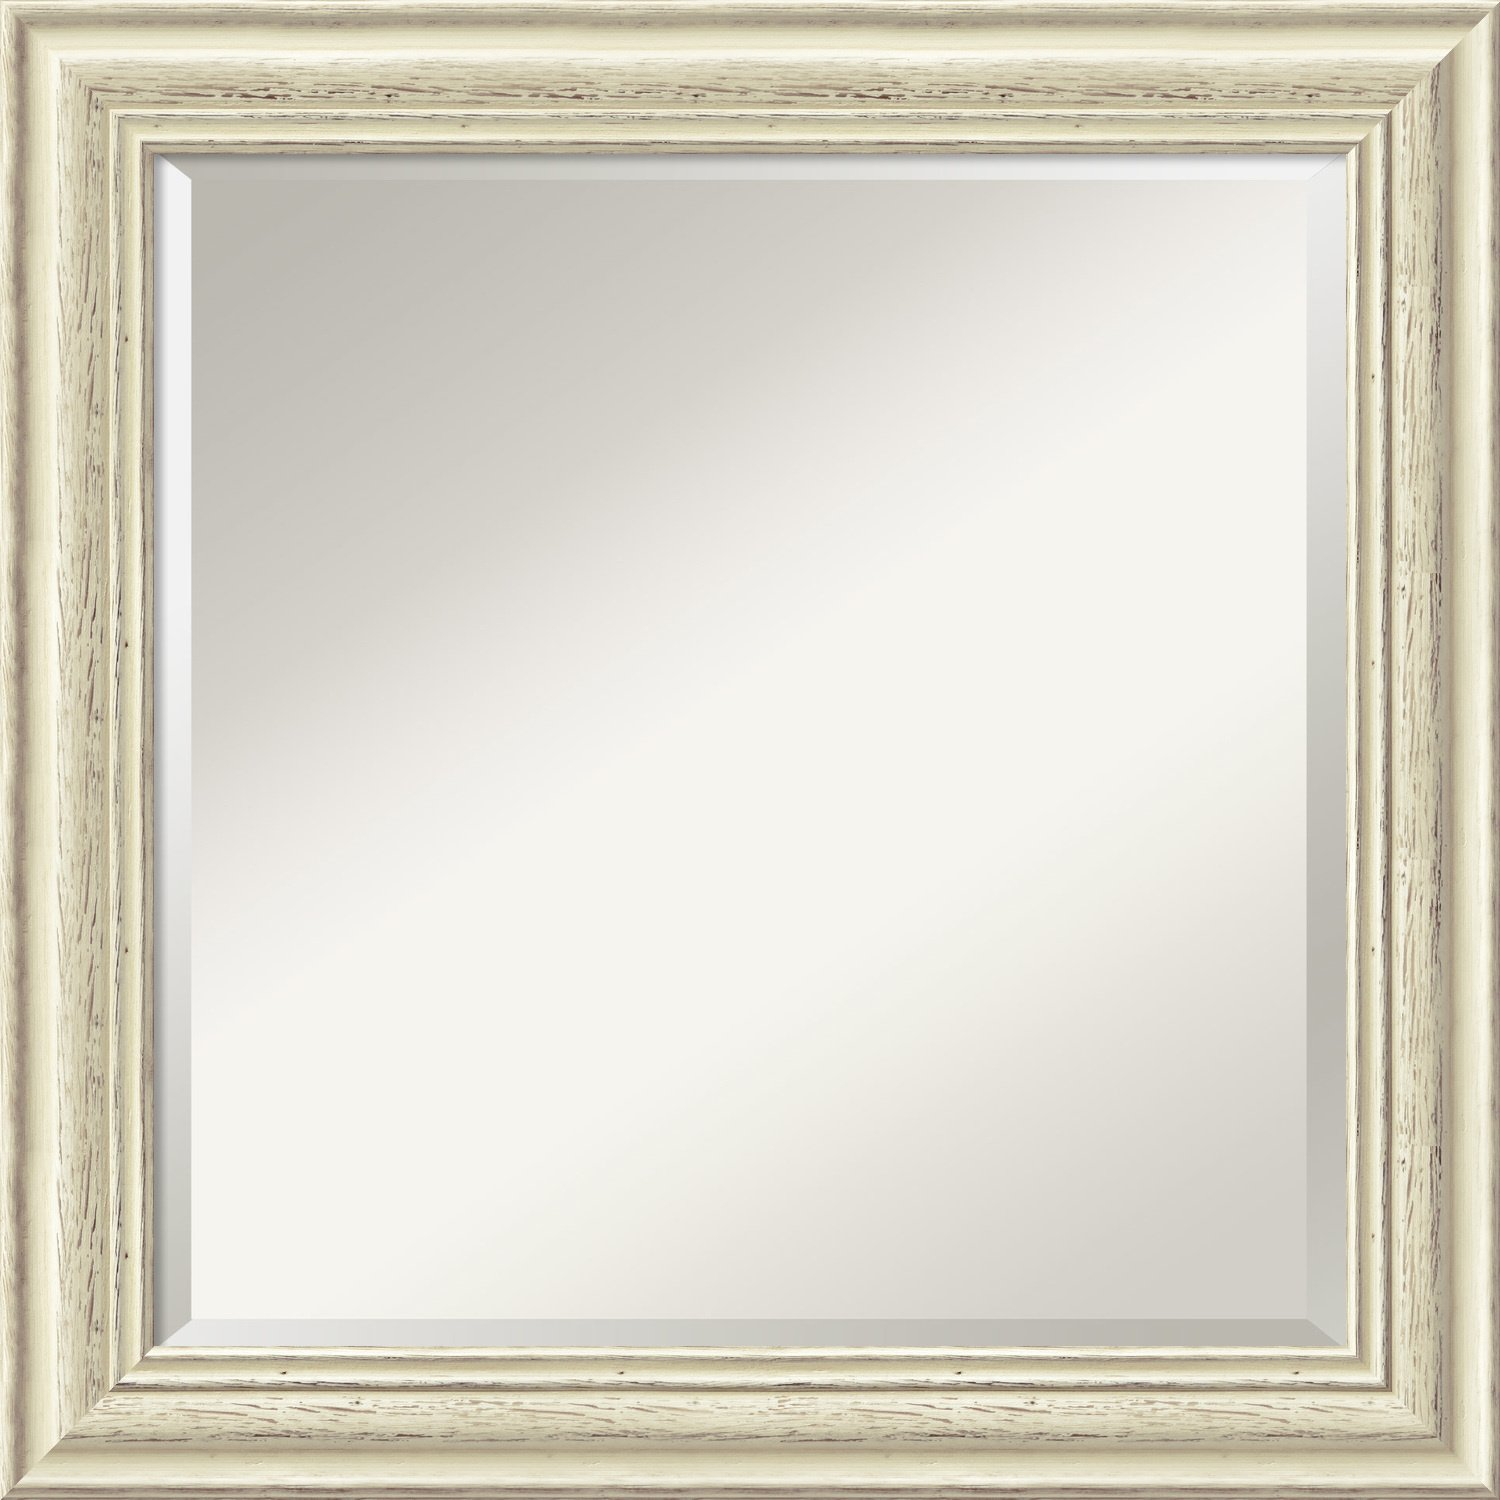 Country White Wash Glass Size  20 x 20 Wall Mirror Large, whiteo White Wood  Outer Size 32 x 26